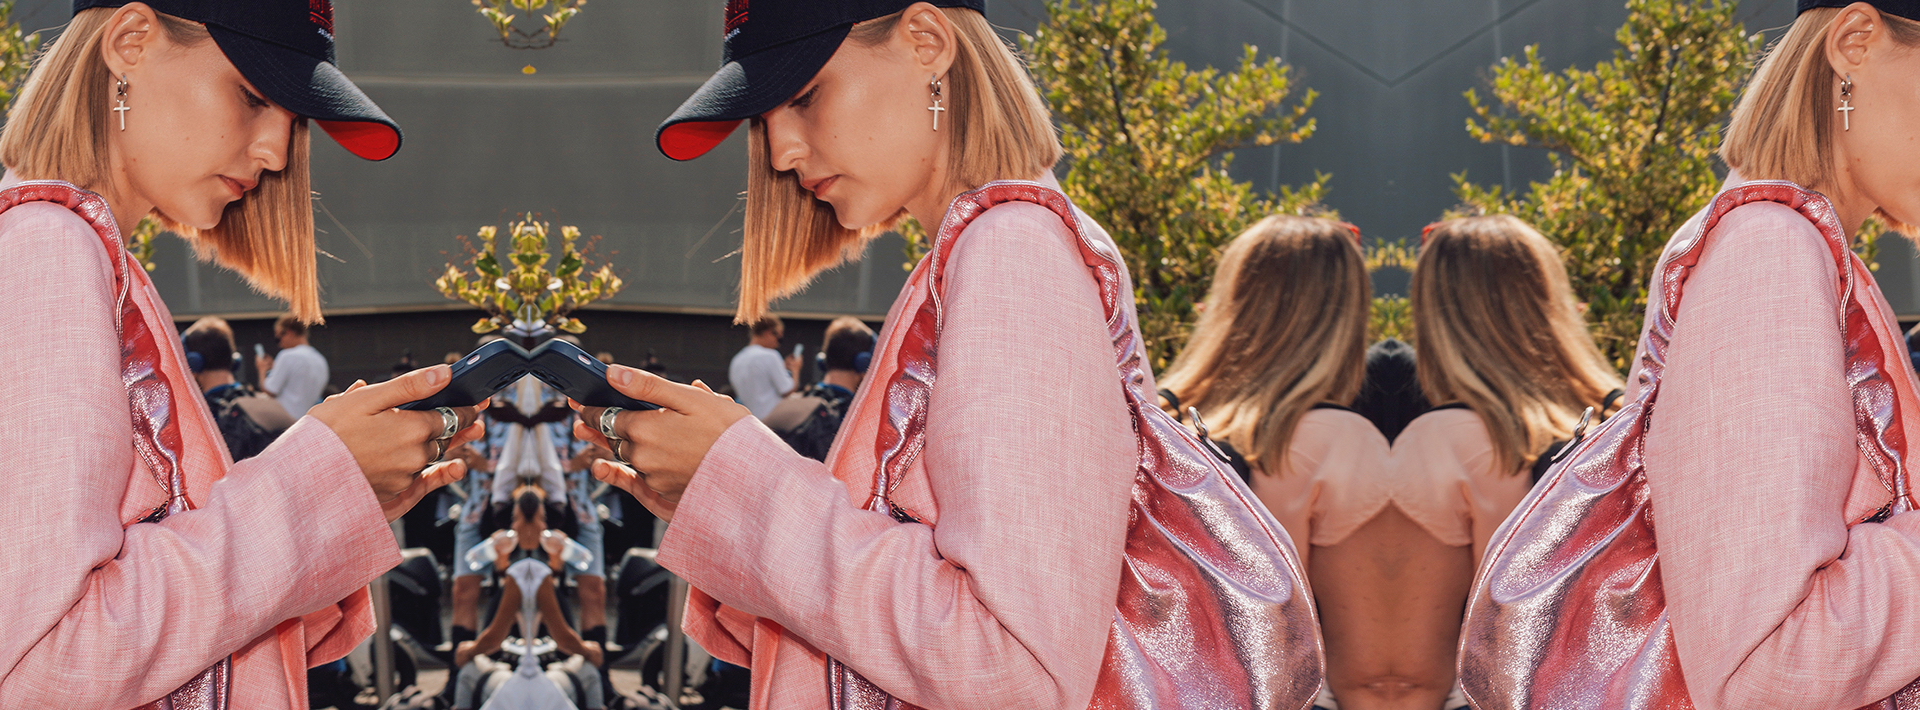 Social media celebs and models dressed in bright leather colors eat the first Fashion Week after the pandemic times.